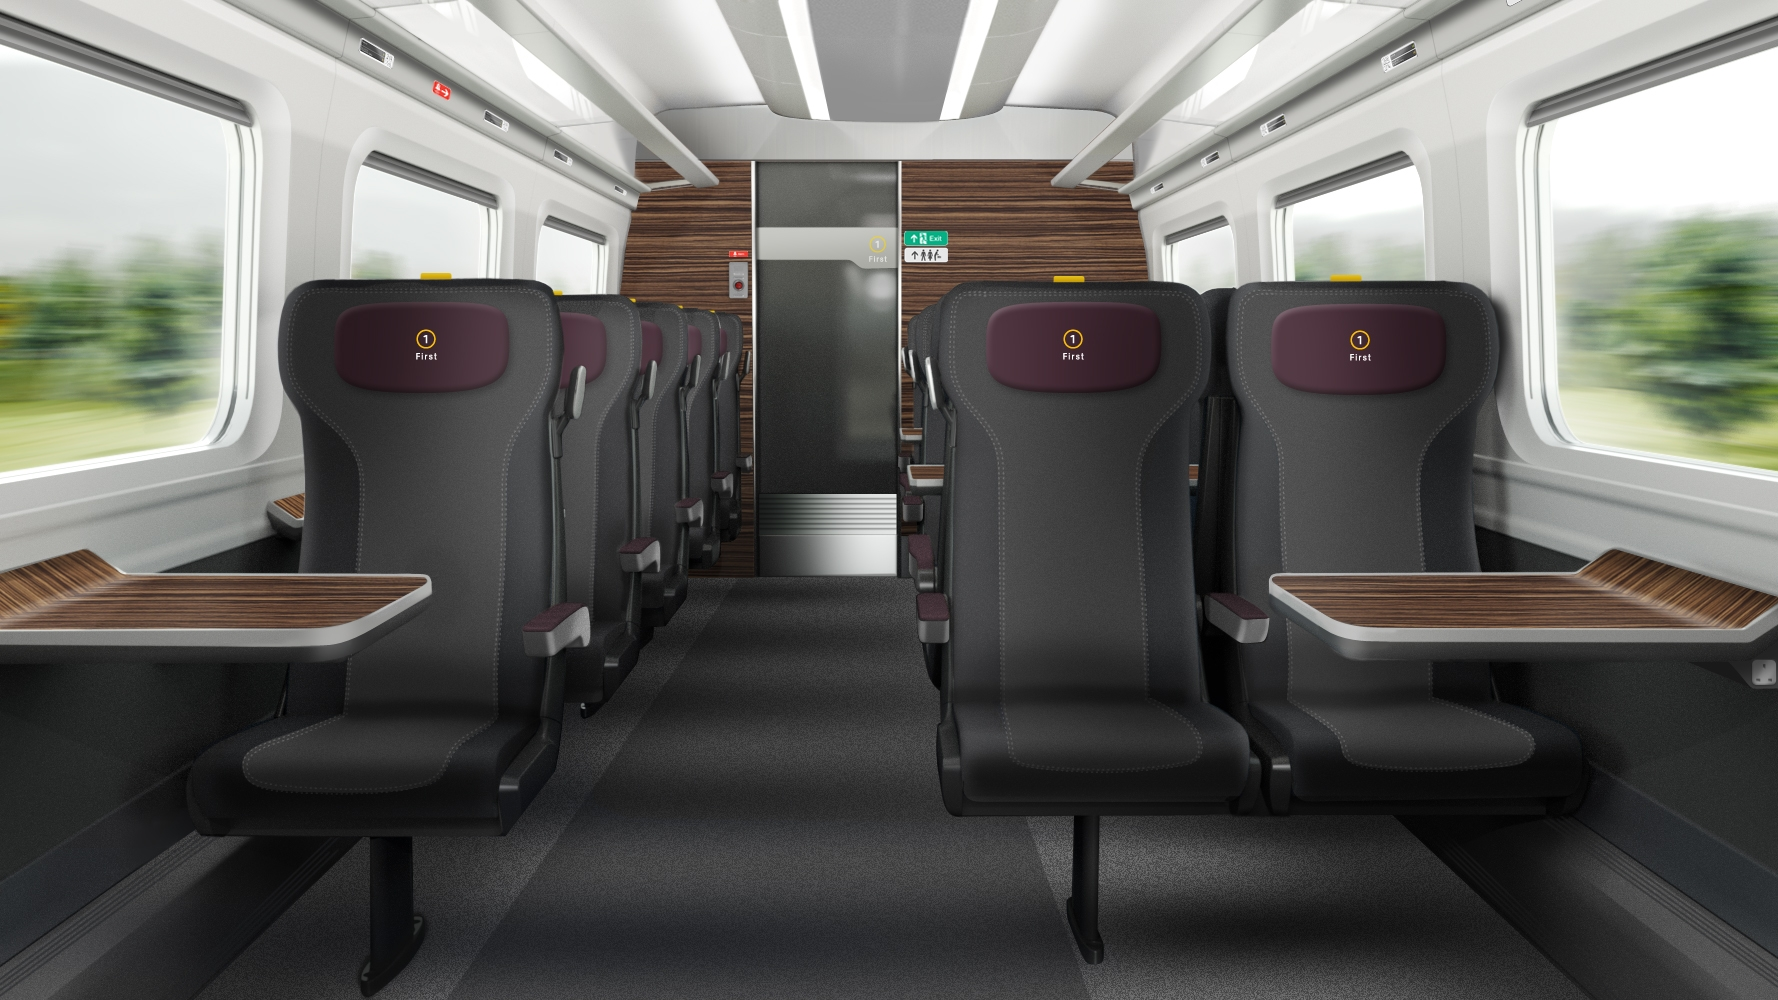 A glimpse of how the First Class carriages will look on Hitachi's Newton Aycliffe-built trains